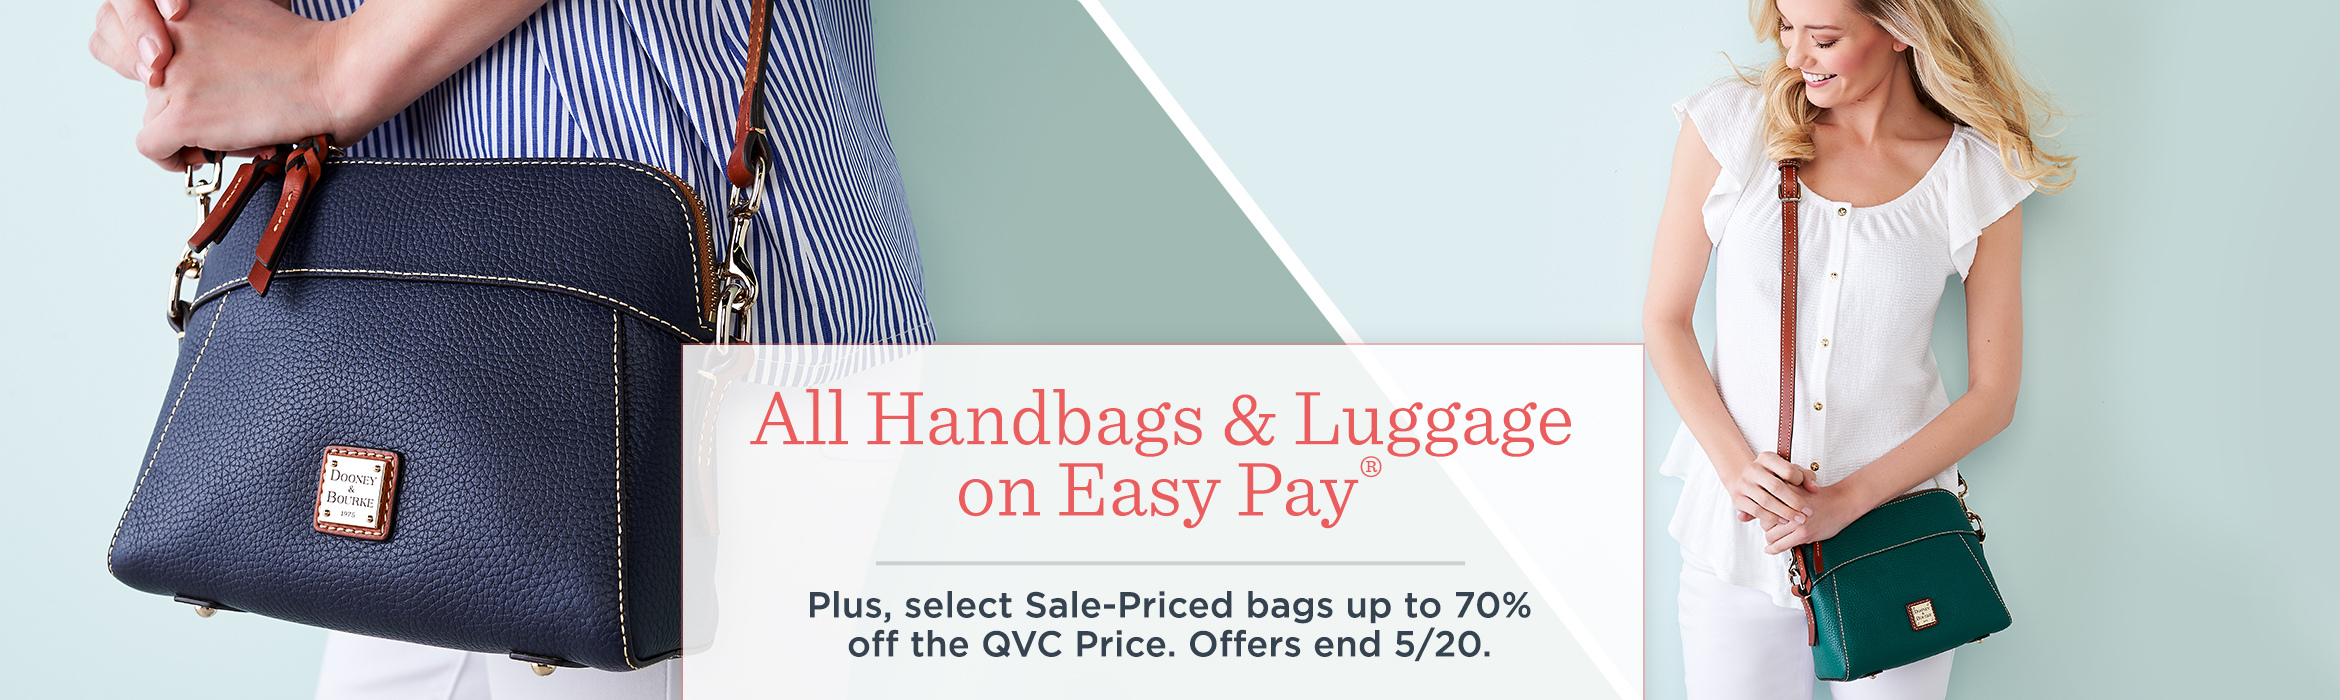 All Handbags & Luggage on Easy Pay®  Plus, select Sale-Priced bags up to 70% off the QVC Price. Offers end 5/20.